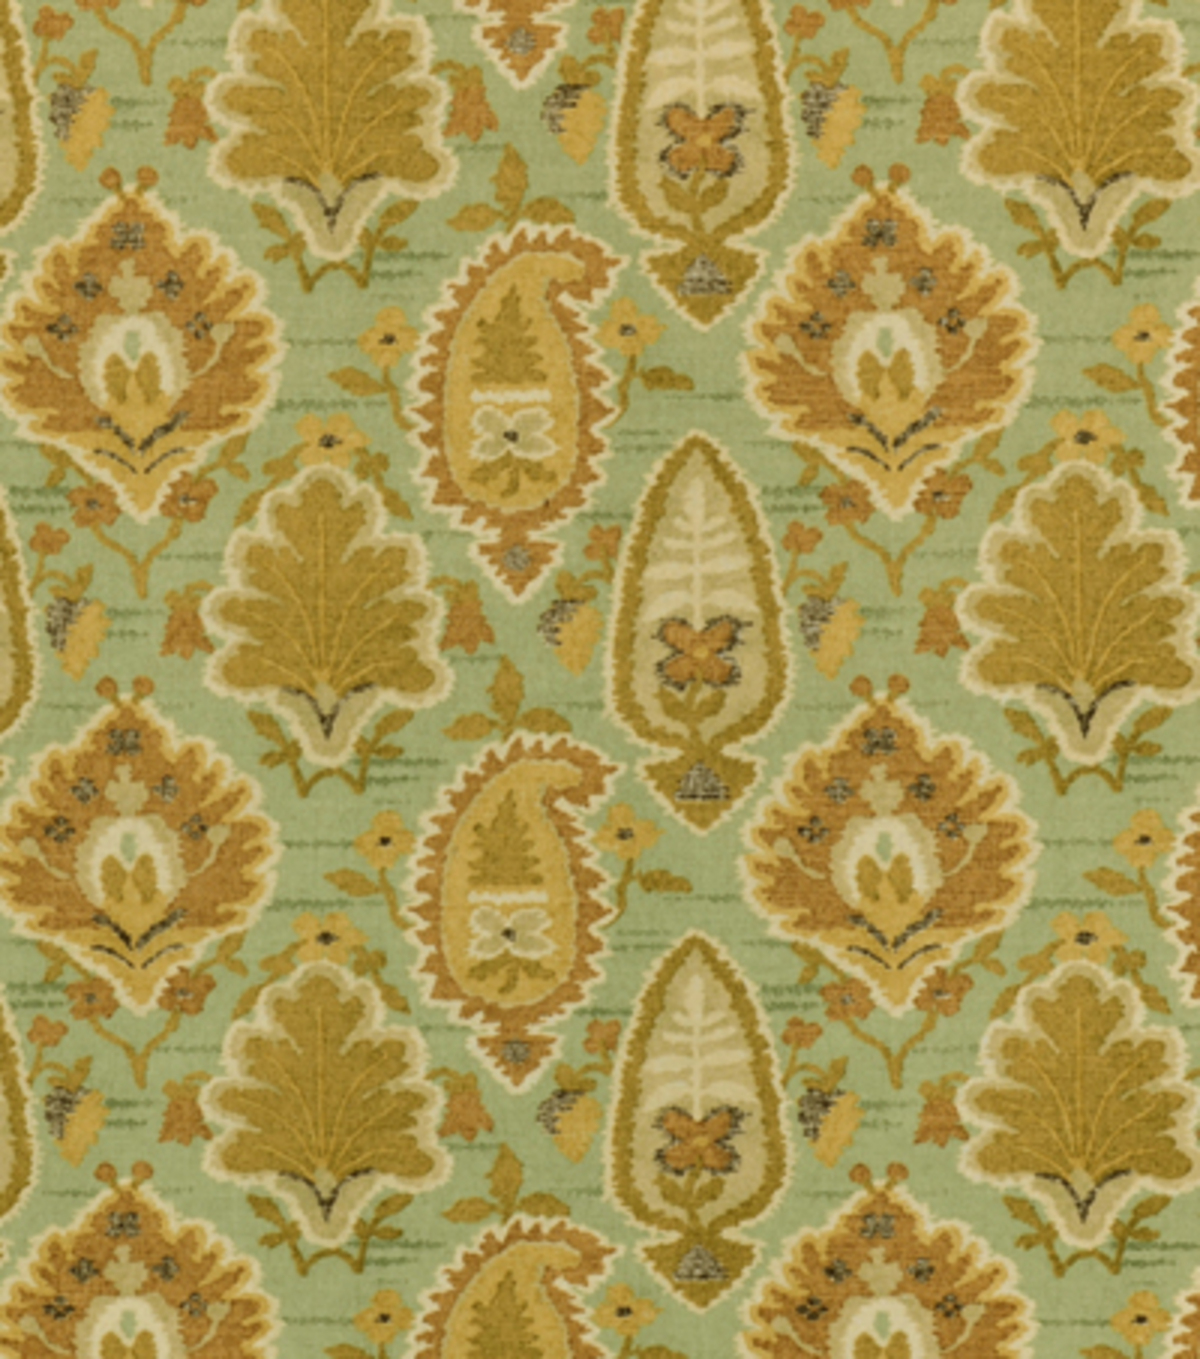 Home Decor 8\u0022x8\u0022 Fabric Swatch-Covington Medina 246 Patina